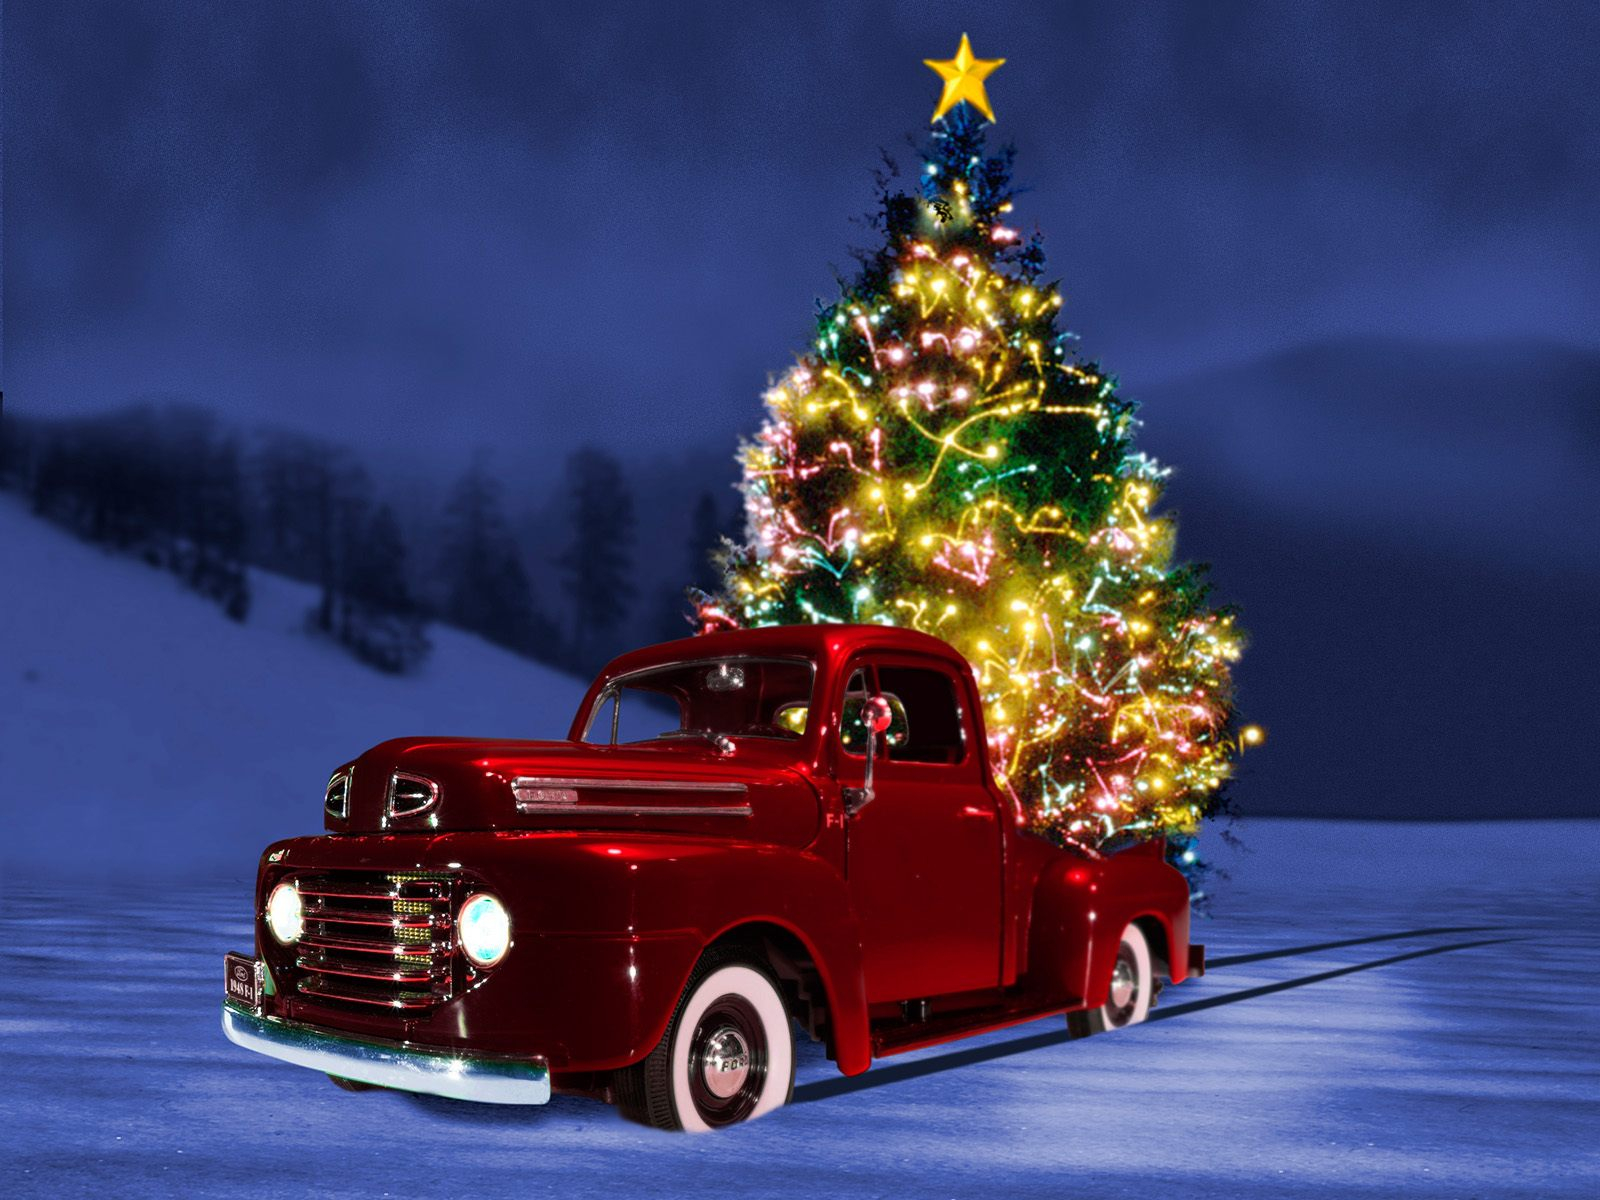 Collection of Free Hd Christmas Wallpapers on HDWallpapers